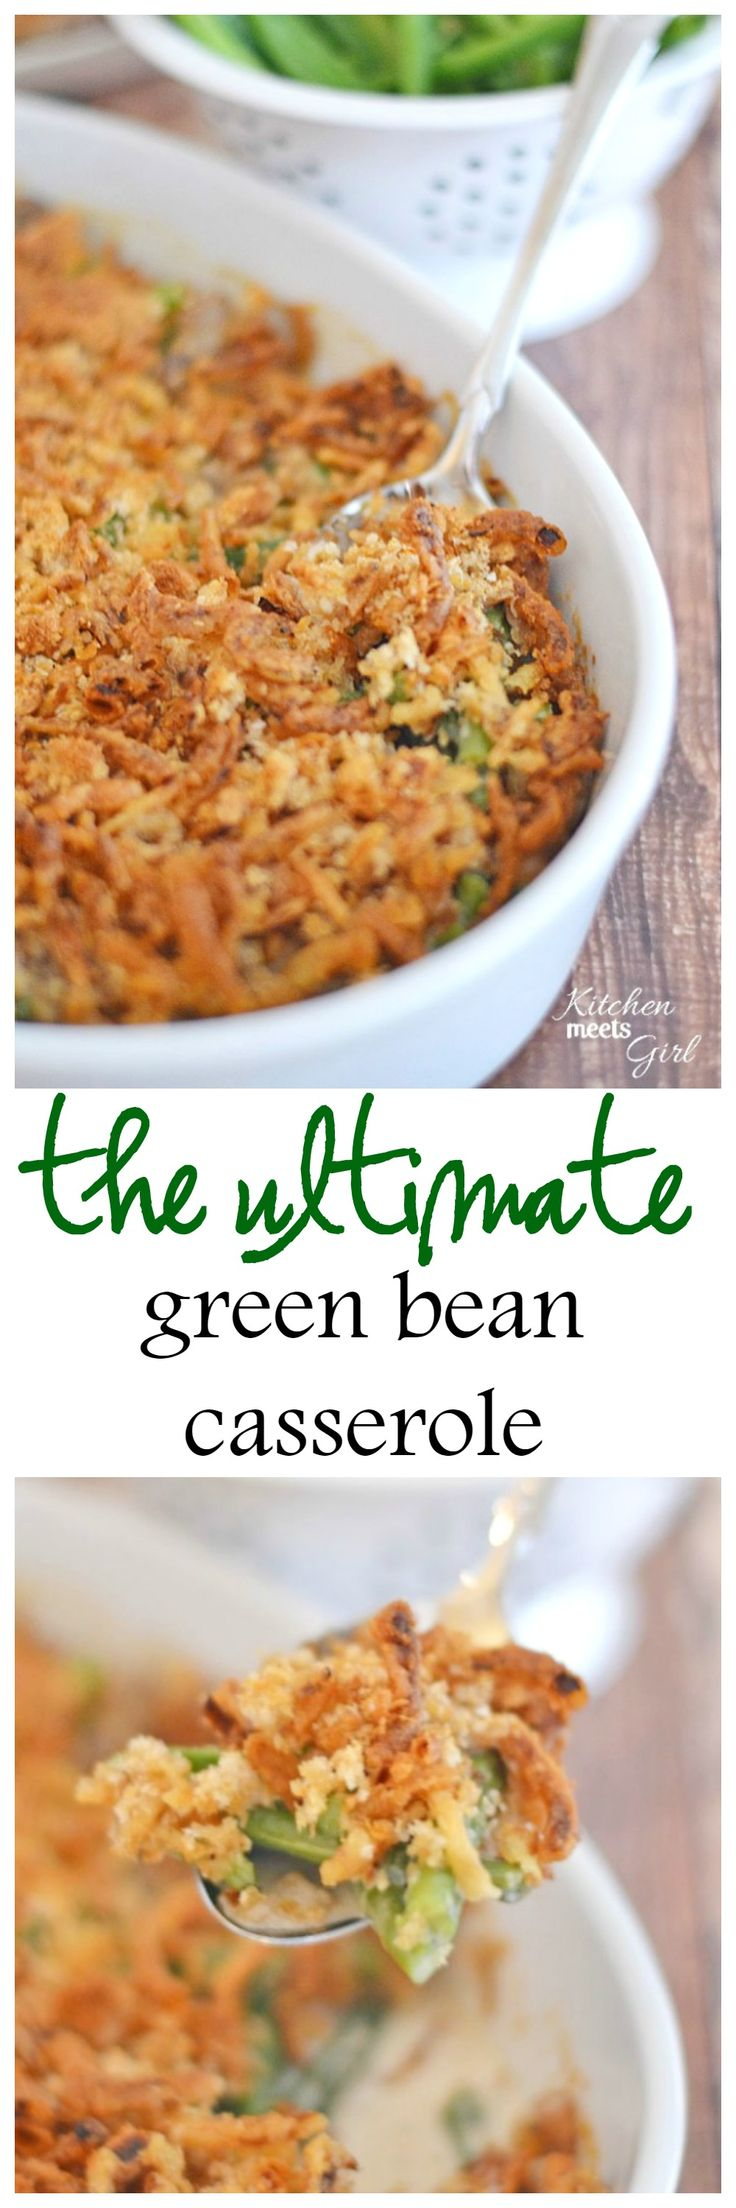 This Ultimate Green Bean Casserole is a fresh spin on the classic, using fresh mushrooms and cream to replace the traditionally used canned condensed soup. Believe me, this version is worth a bit of extra work!